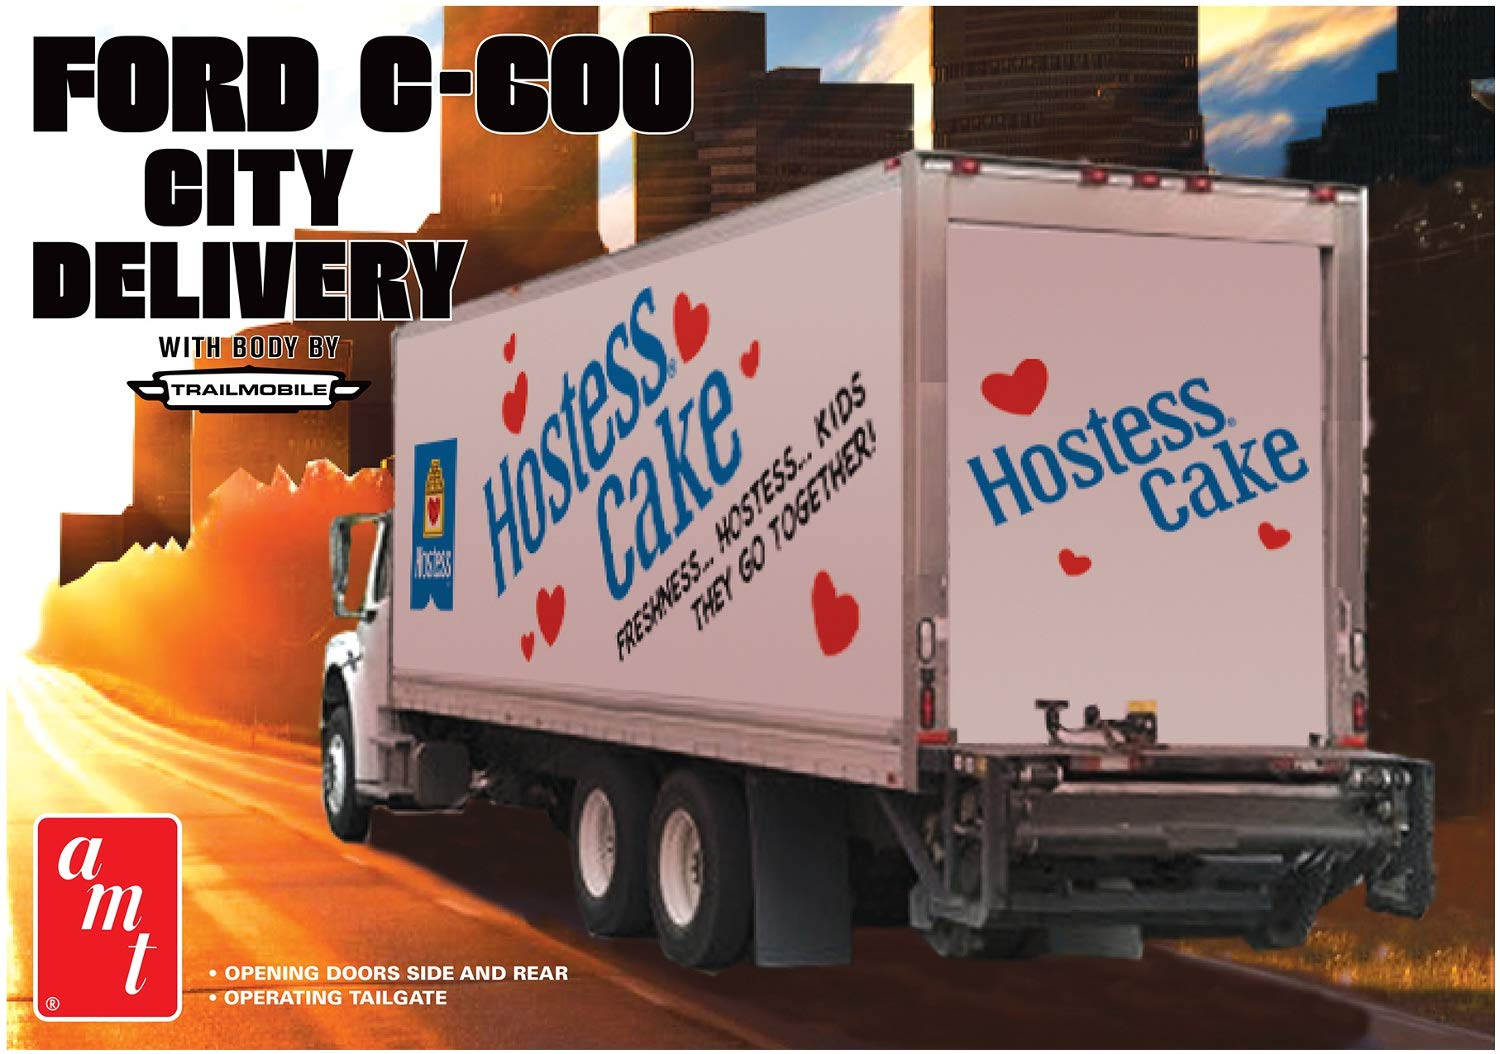 AMT 1139 1/25 Ford C-600 City Delivery, Hostess